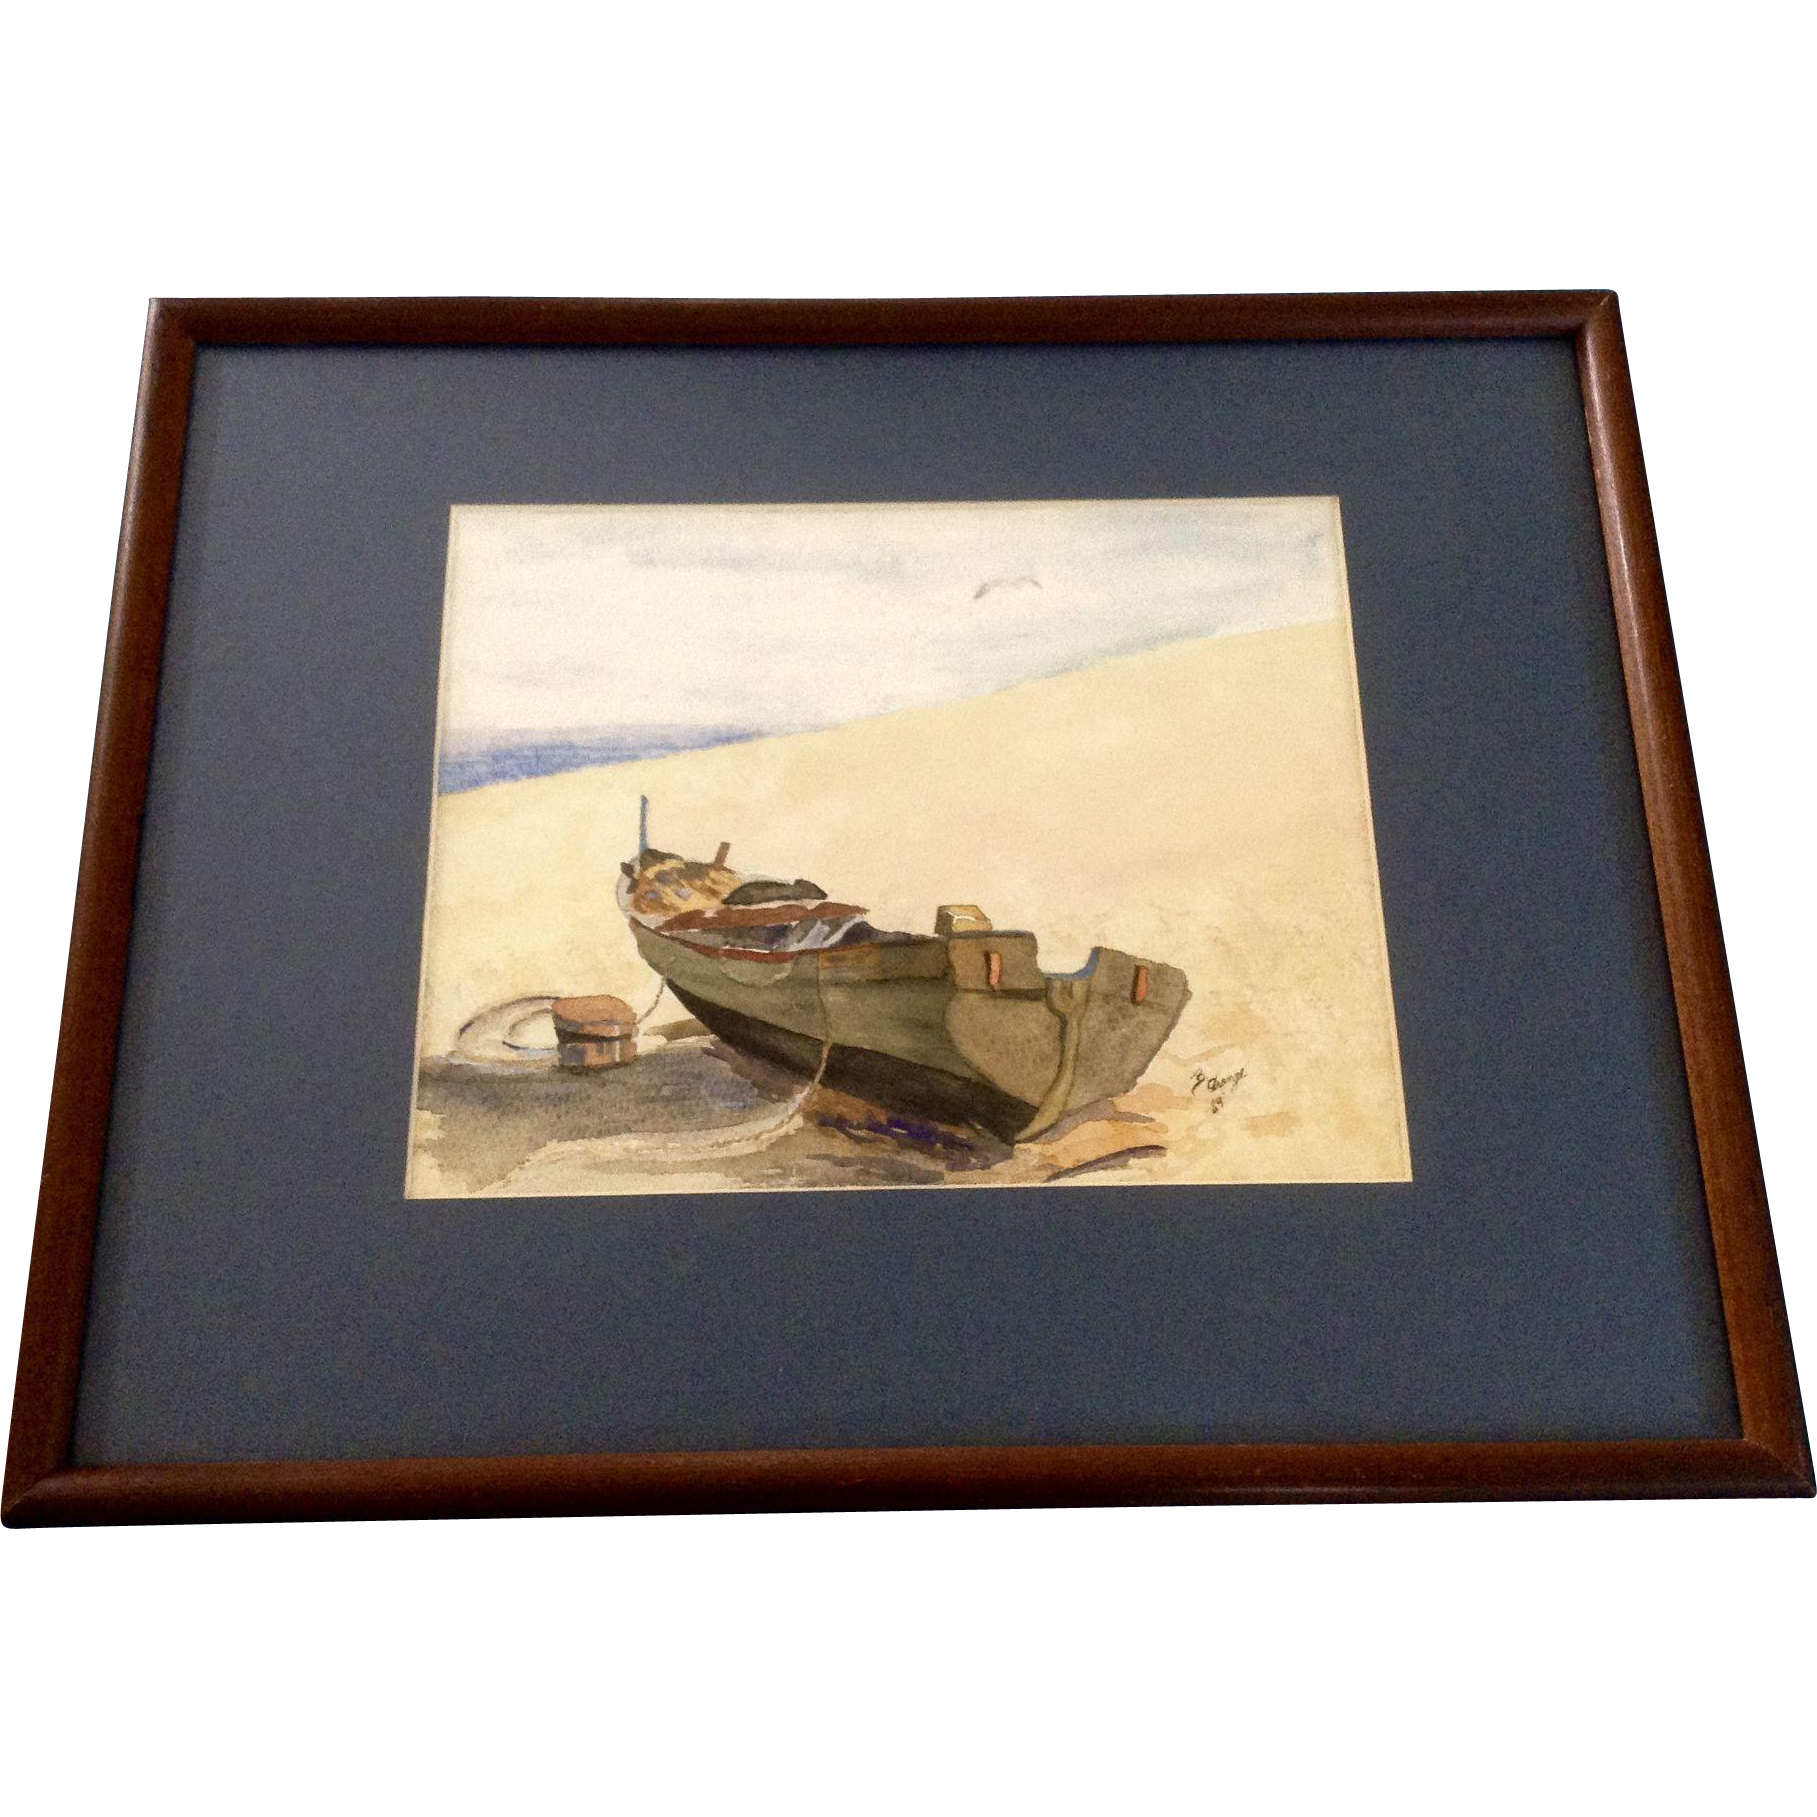 Beach Landscape With Fishermen: B. Drange, Fishing Boat On The Beach Landscape Watercolor